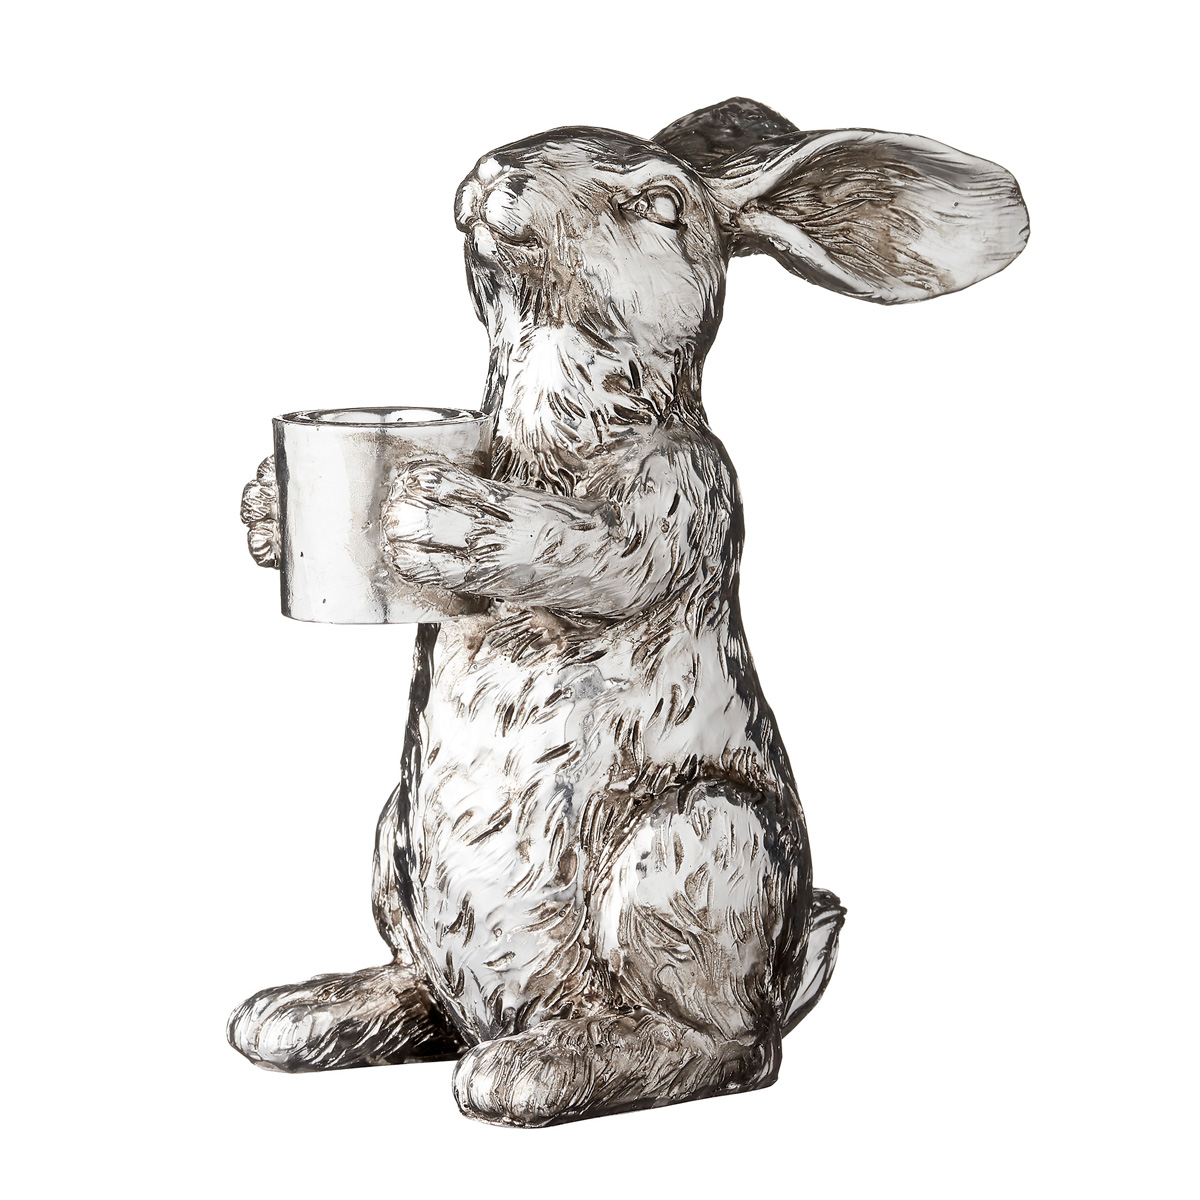 lene-bjerre-serafina-rabbit-candle-holder-17-cm-a00005588